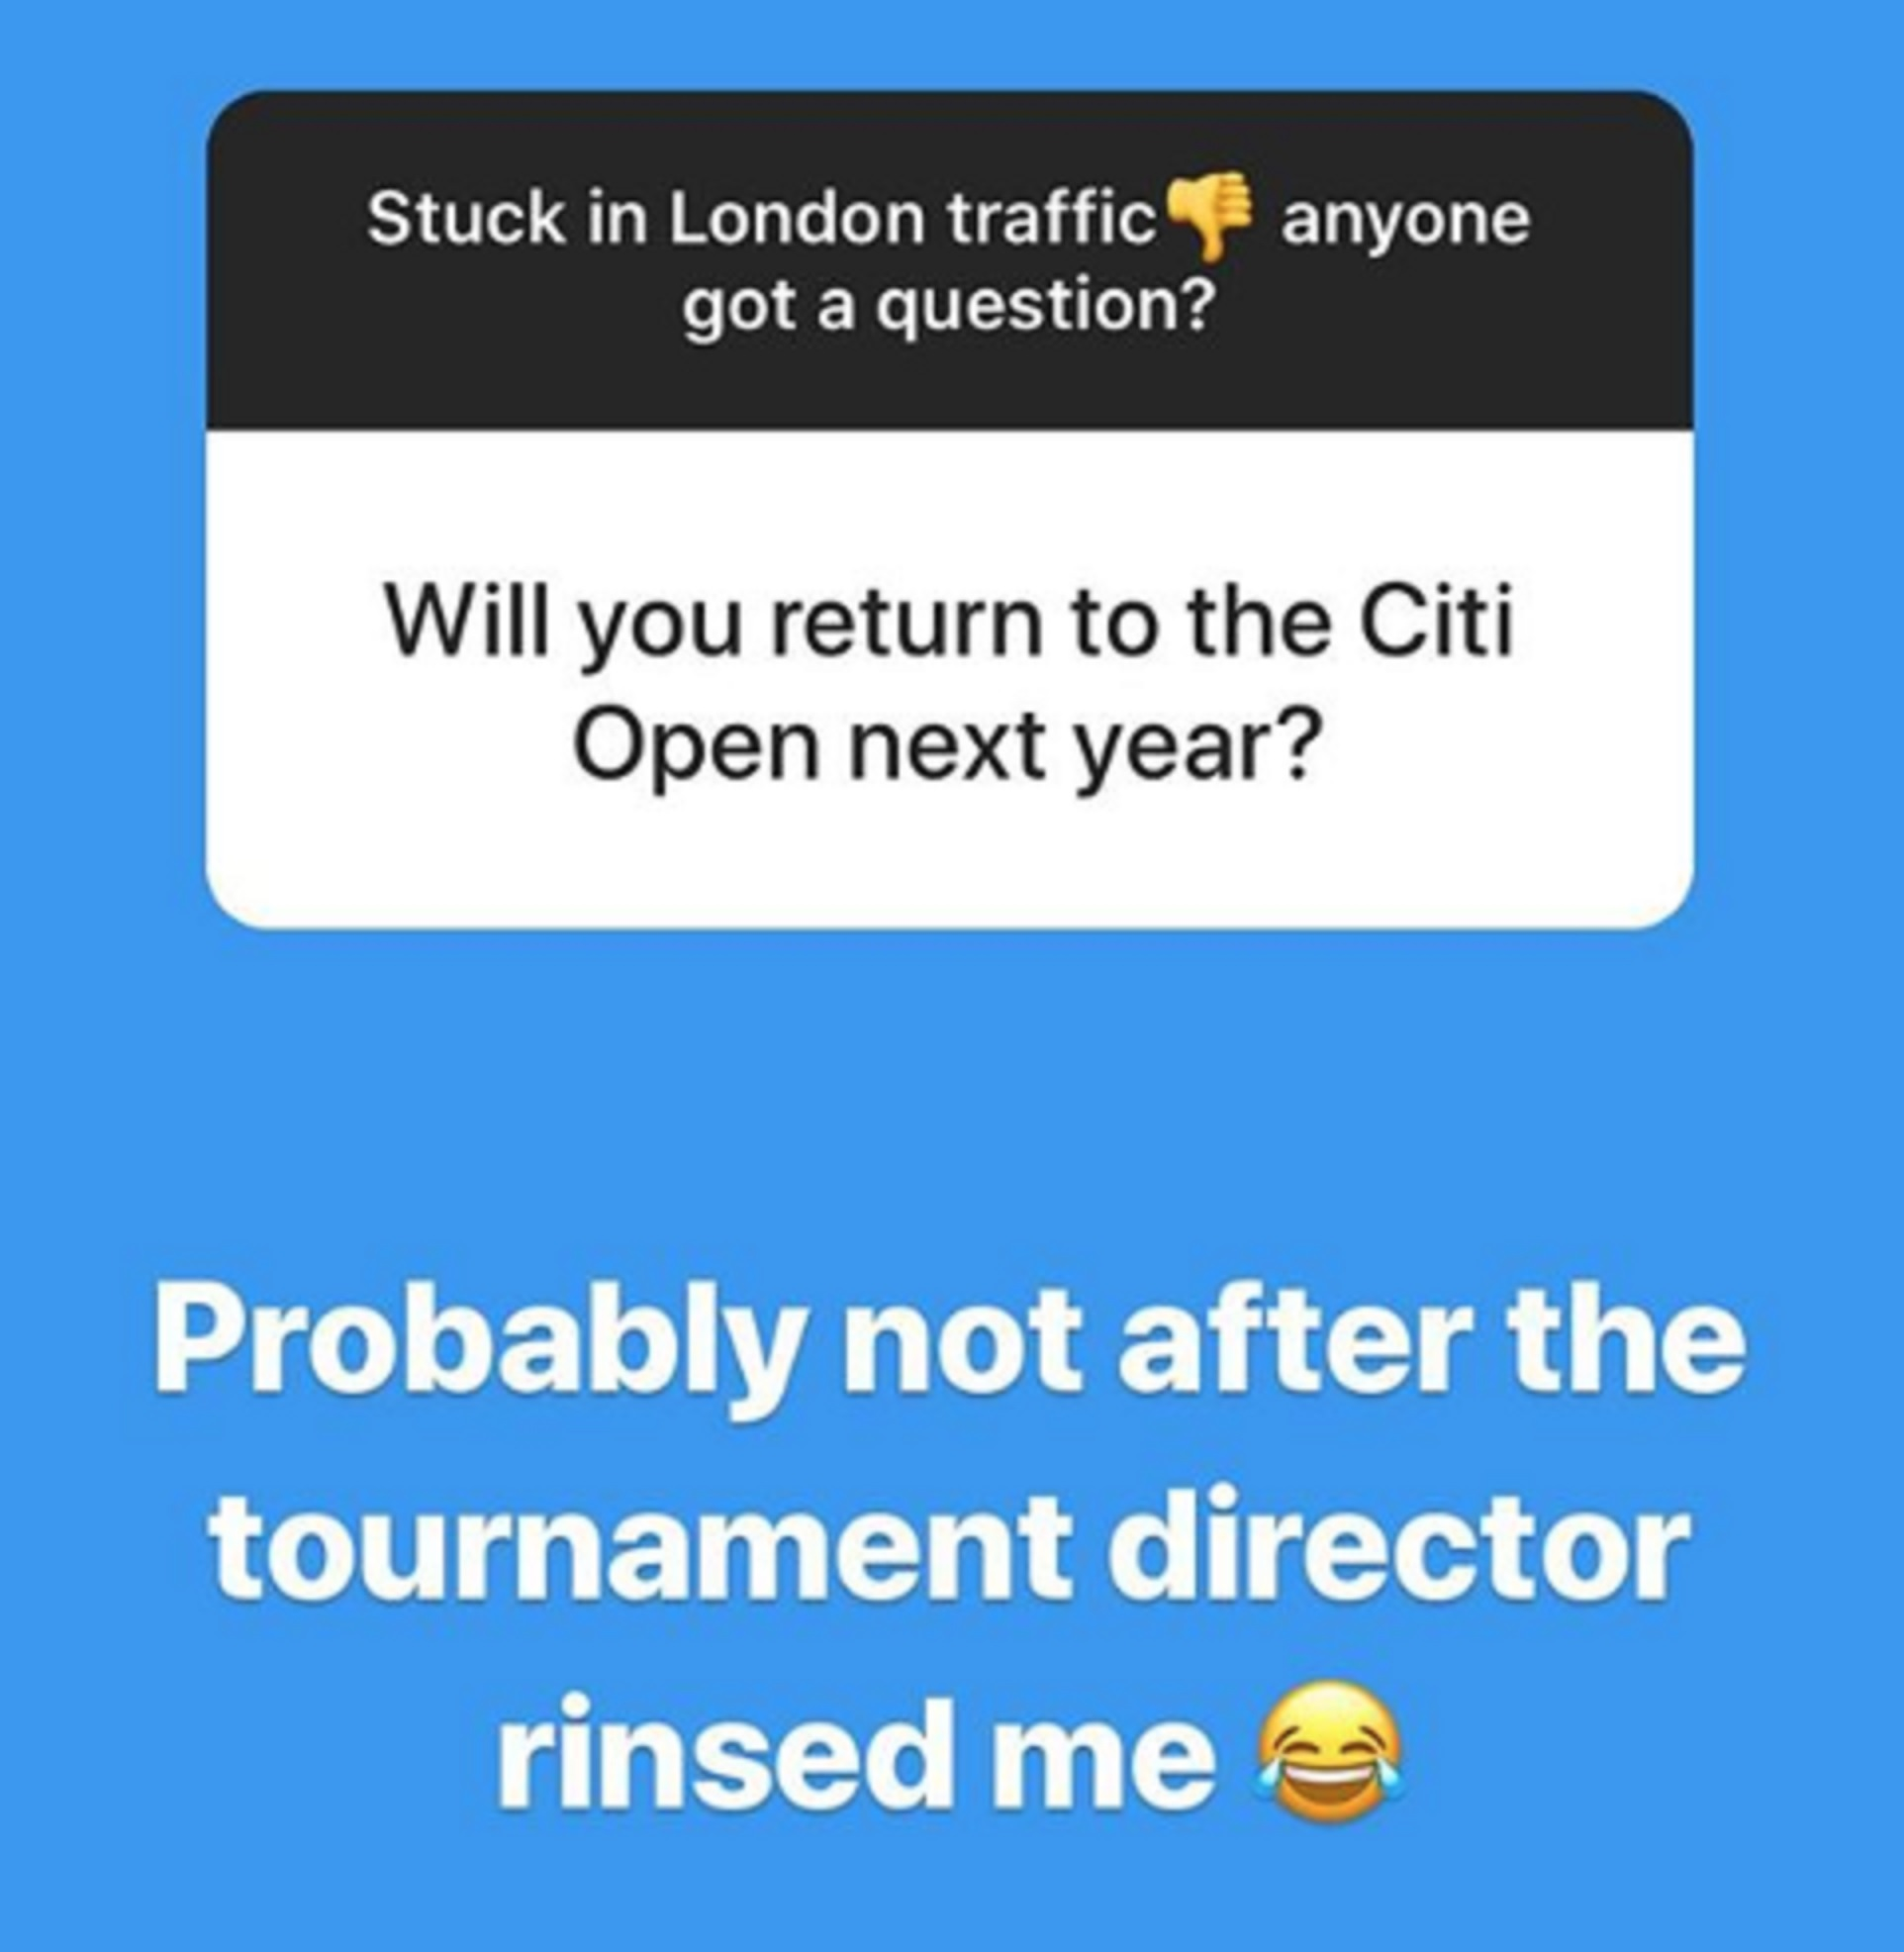 A screen grab from Andy Murray's Instagram Stories